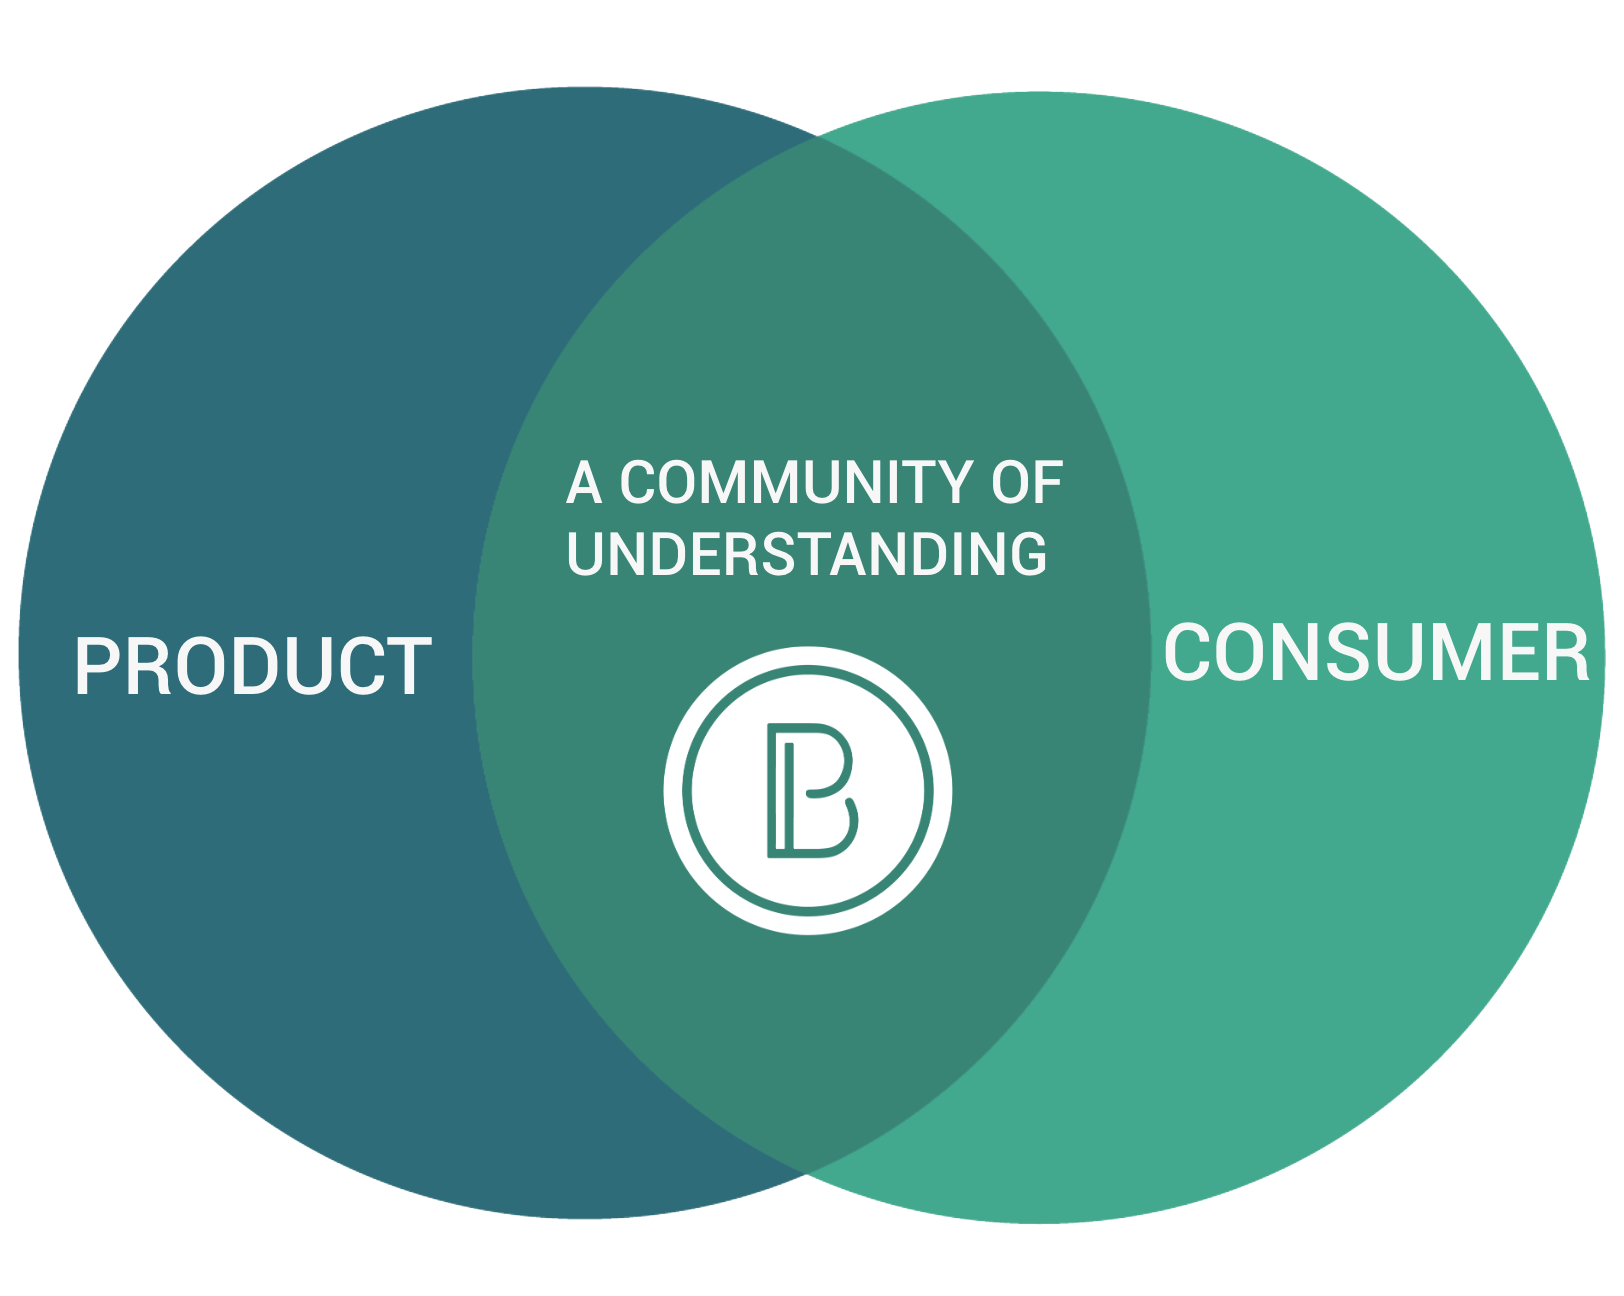 Living our mission - We are a nimble team of thinkers and doers who translate ideas into products built for success at the intersection of food experience. Brisan builds and activates communities at the heart of consumer and product understanding.